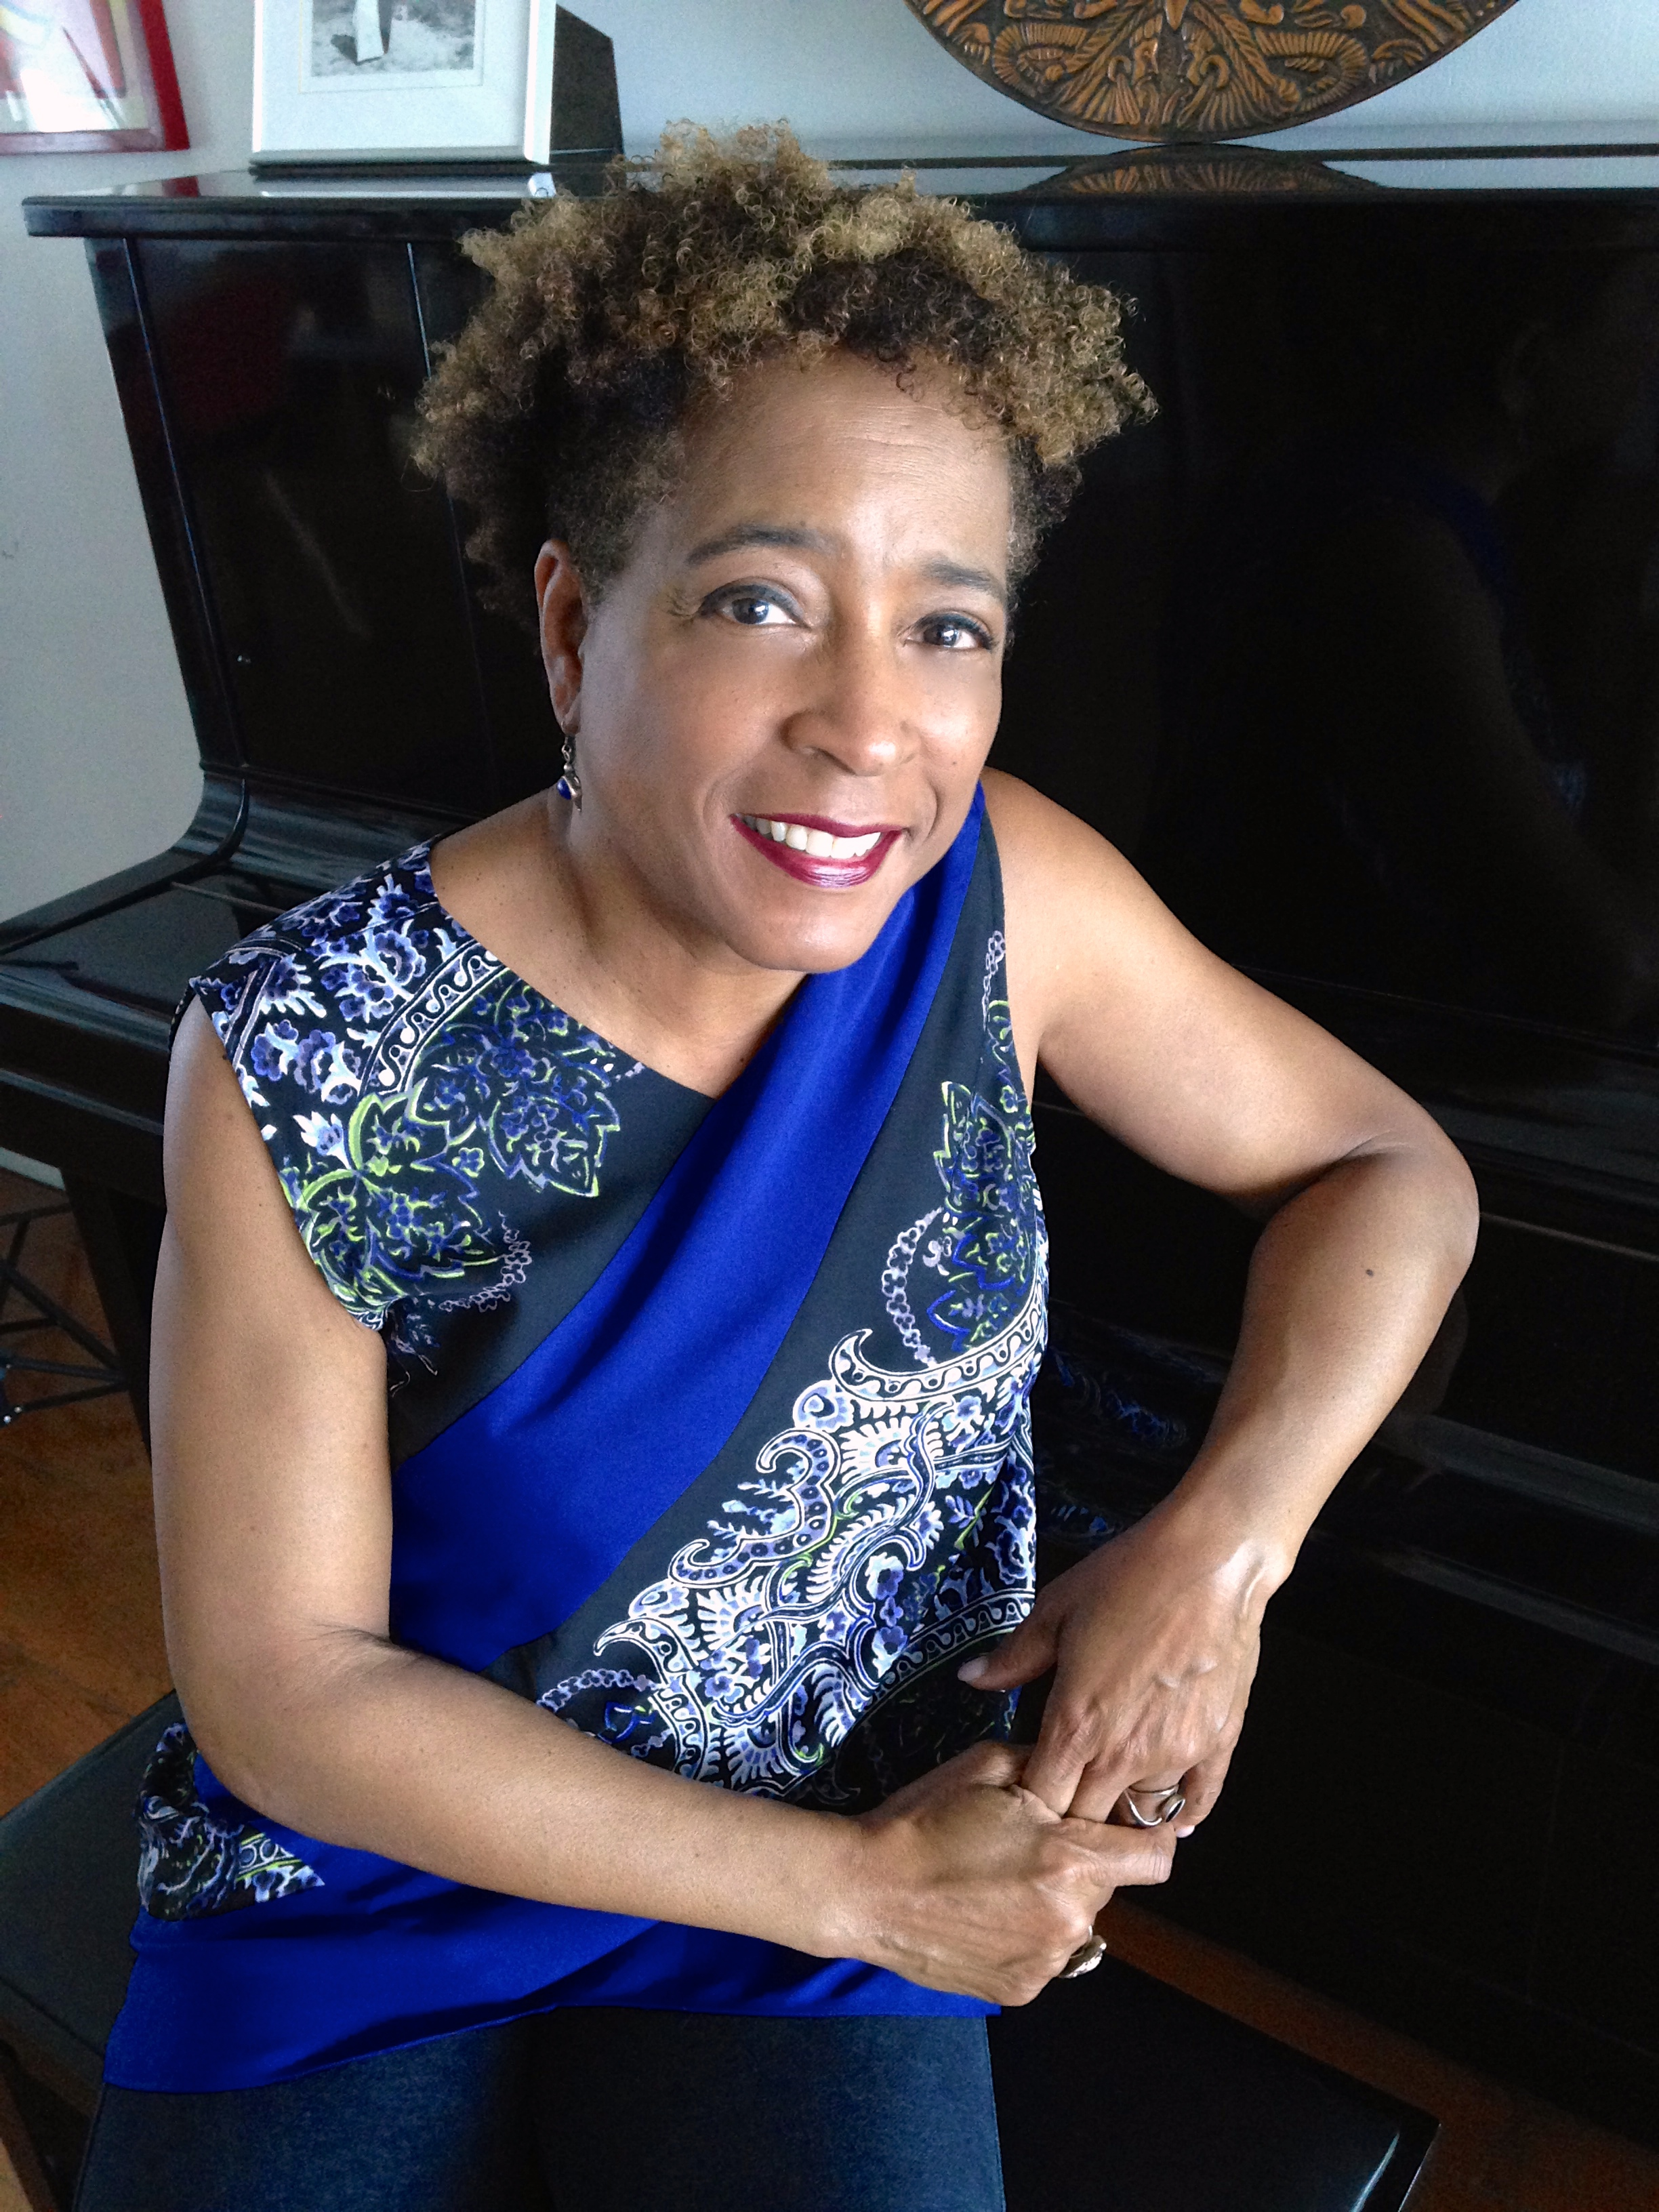 deborah gray whites arnt i a woman Deborah gray white is professor of history and co-director of the rutgers center for historical analysis at rutgers university she is also the author of too heavy a load bibliographic information.